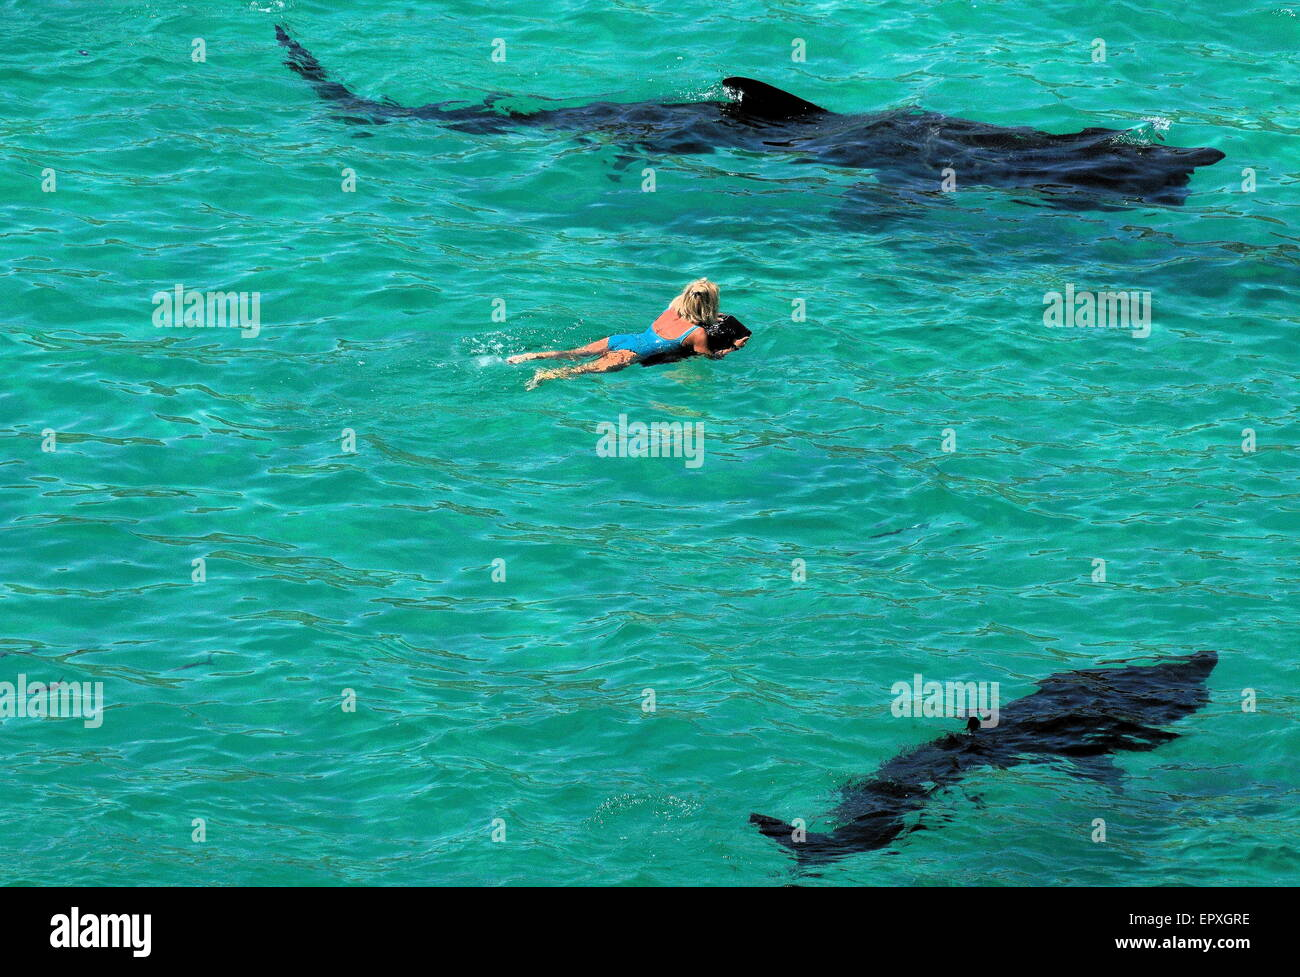 Basking sharks circle female swimmer off the coast of Cornwall - Stock Image